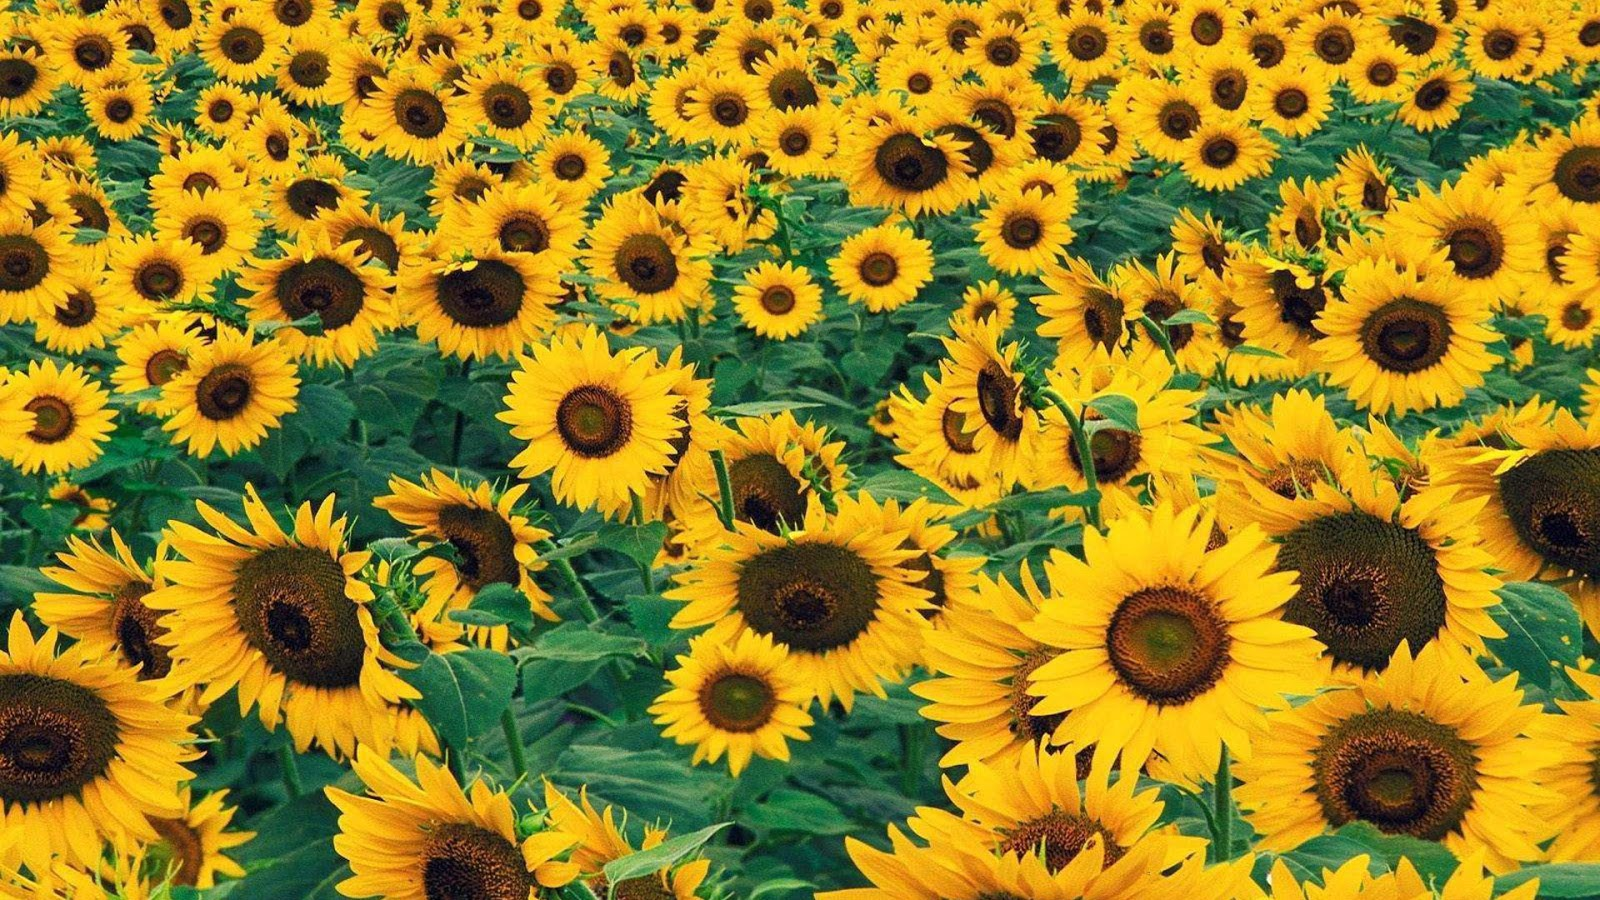 Sunflower Full Hd Wallpapers 1080p Free Download At - Full ...